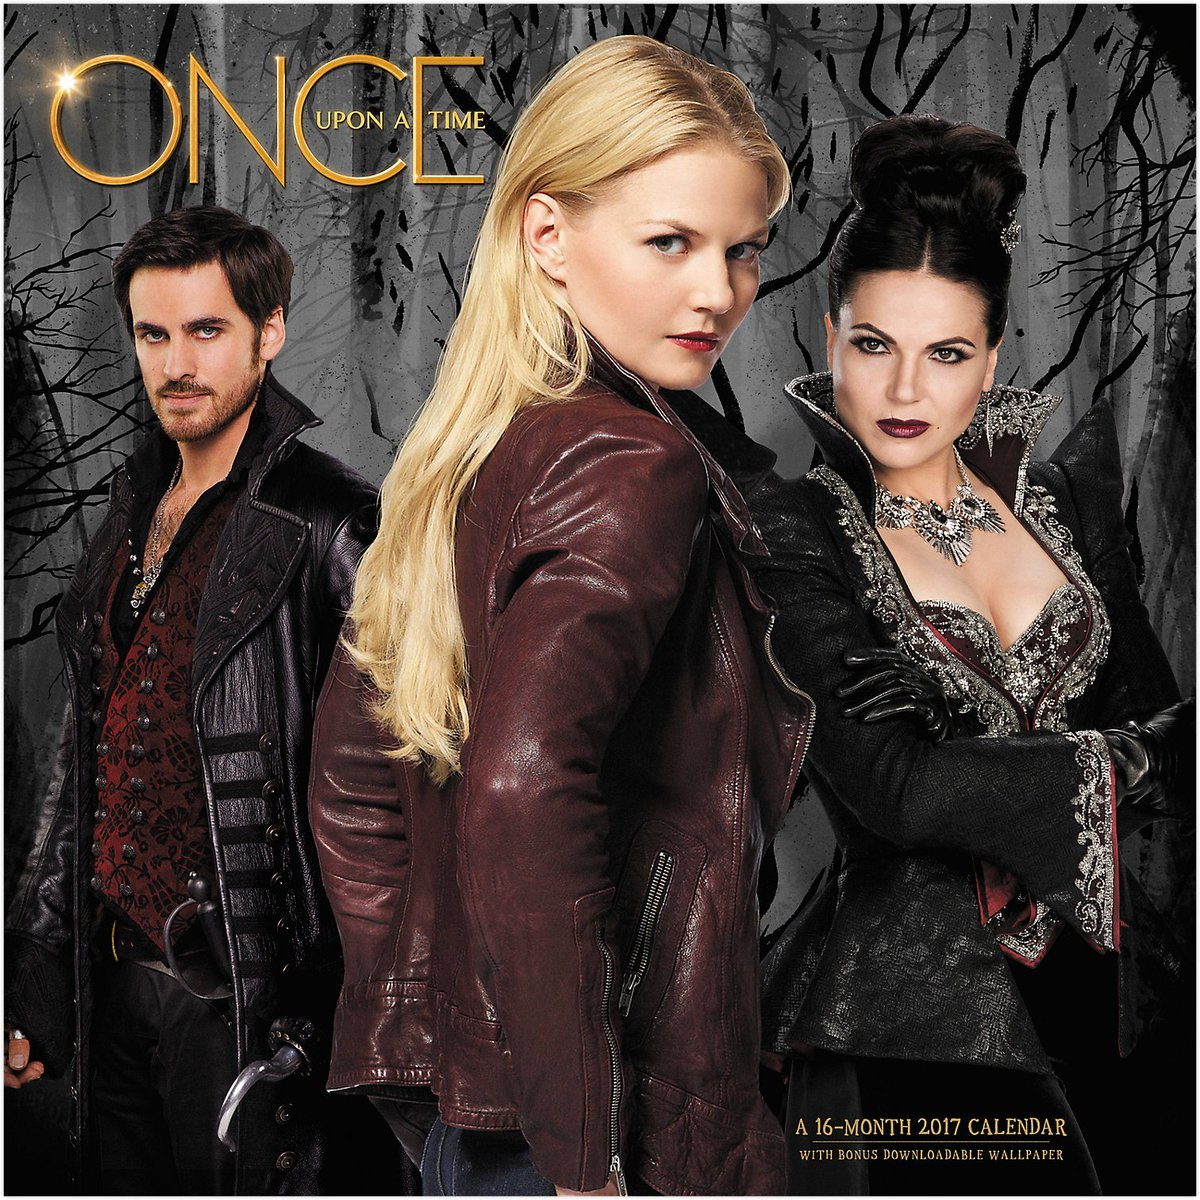 See the front of the new @OnceABC 2017 calendar featuring @LanaParrilla @jenmorrisonlive + @colinodonoghue1 #OUAT https://t.co/NvMGEWub72